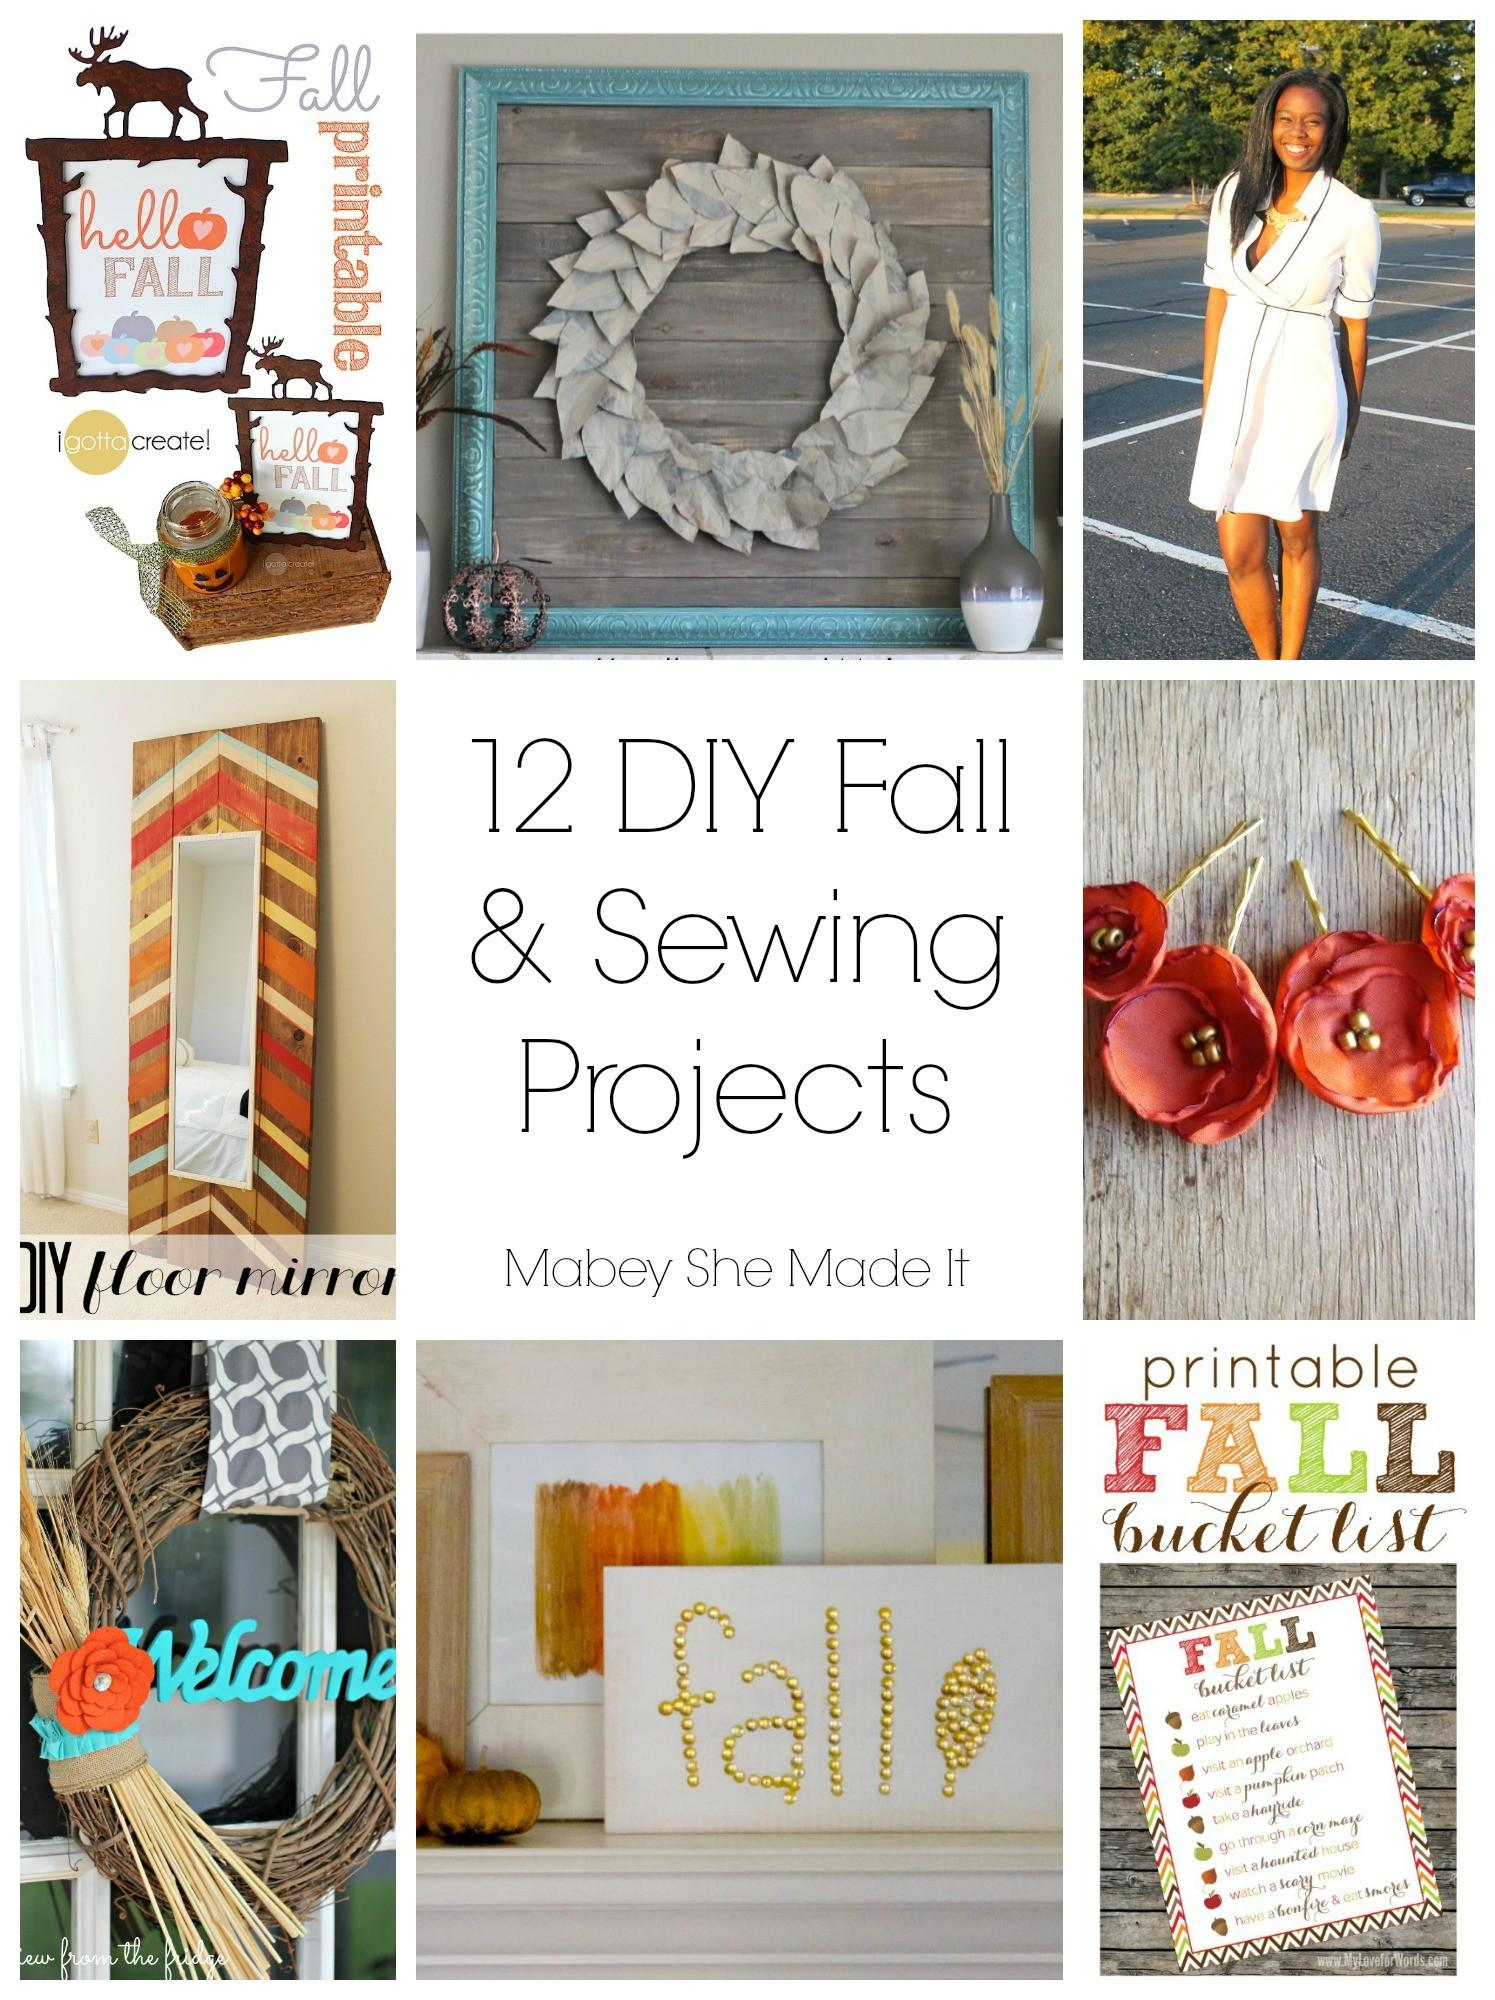 Fall Diy Features Post Mabey She Made